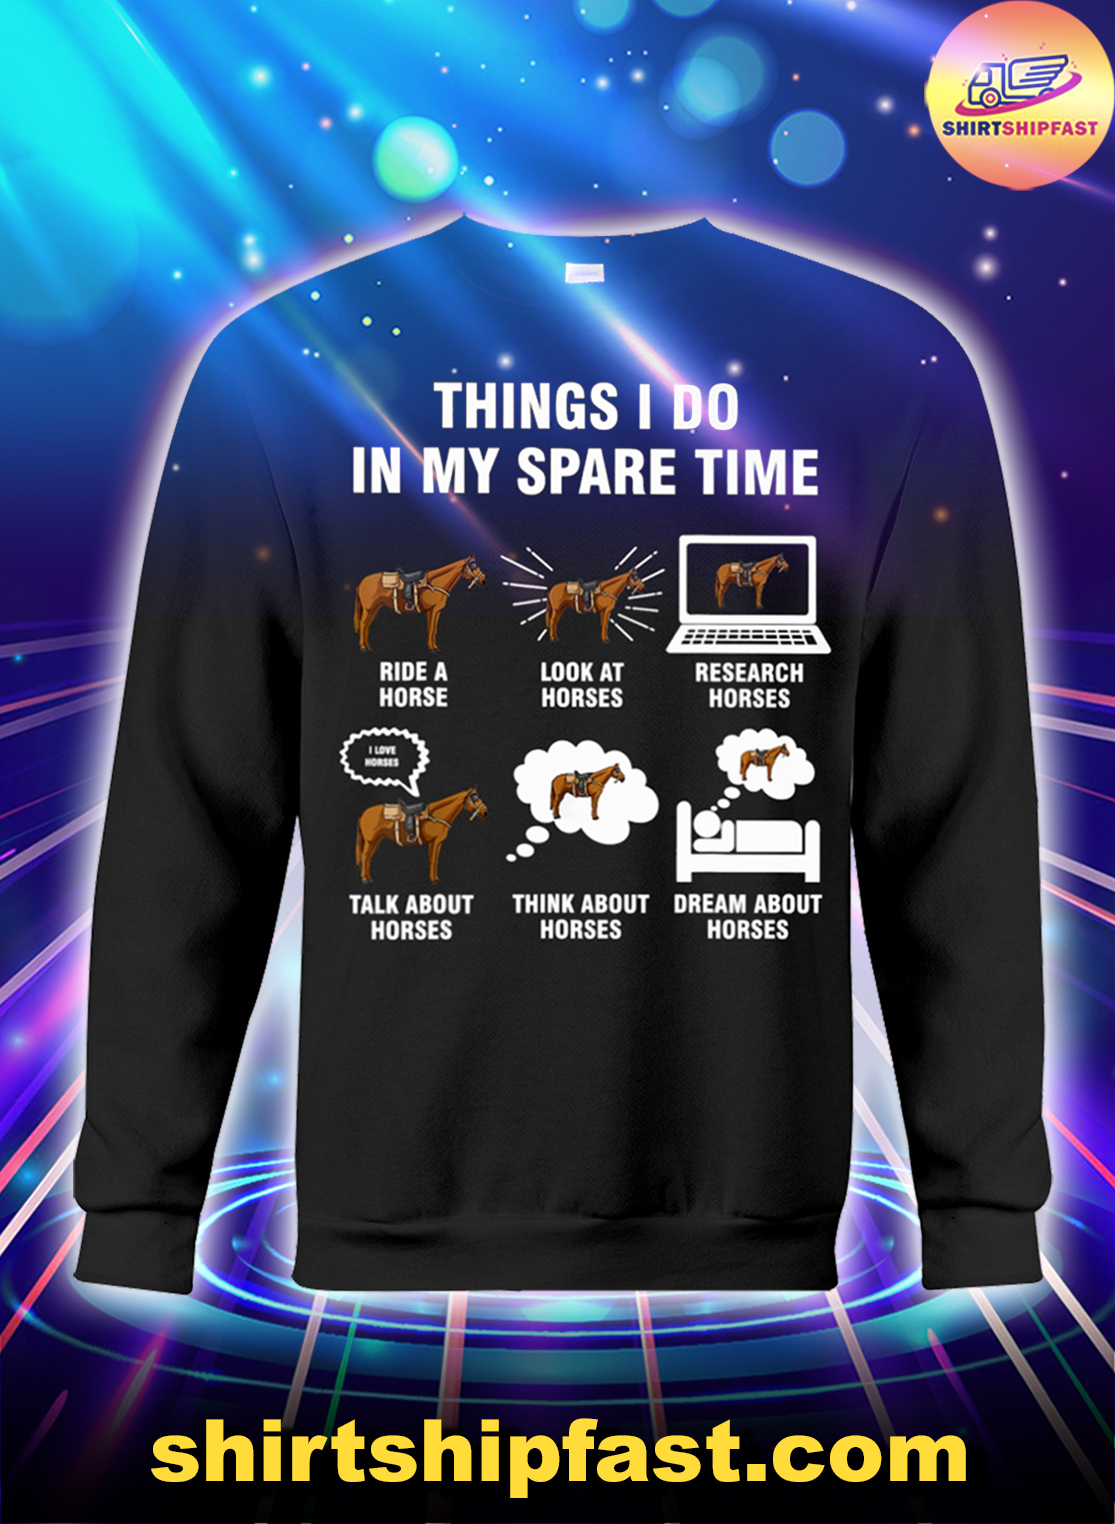 Horse riding 6 things I do in my spare time sweatshirt